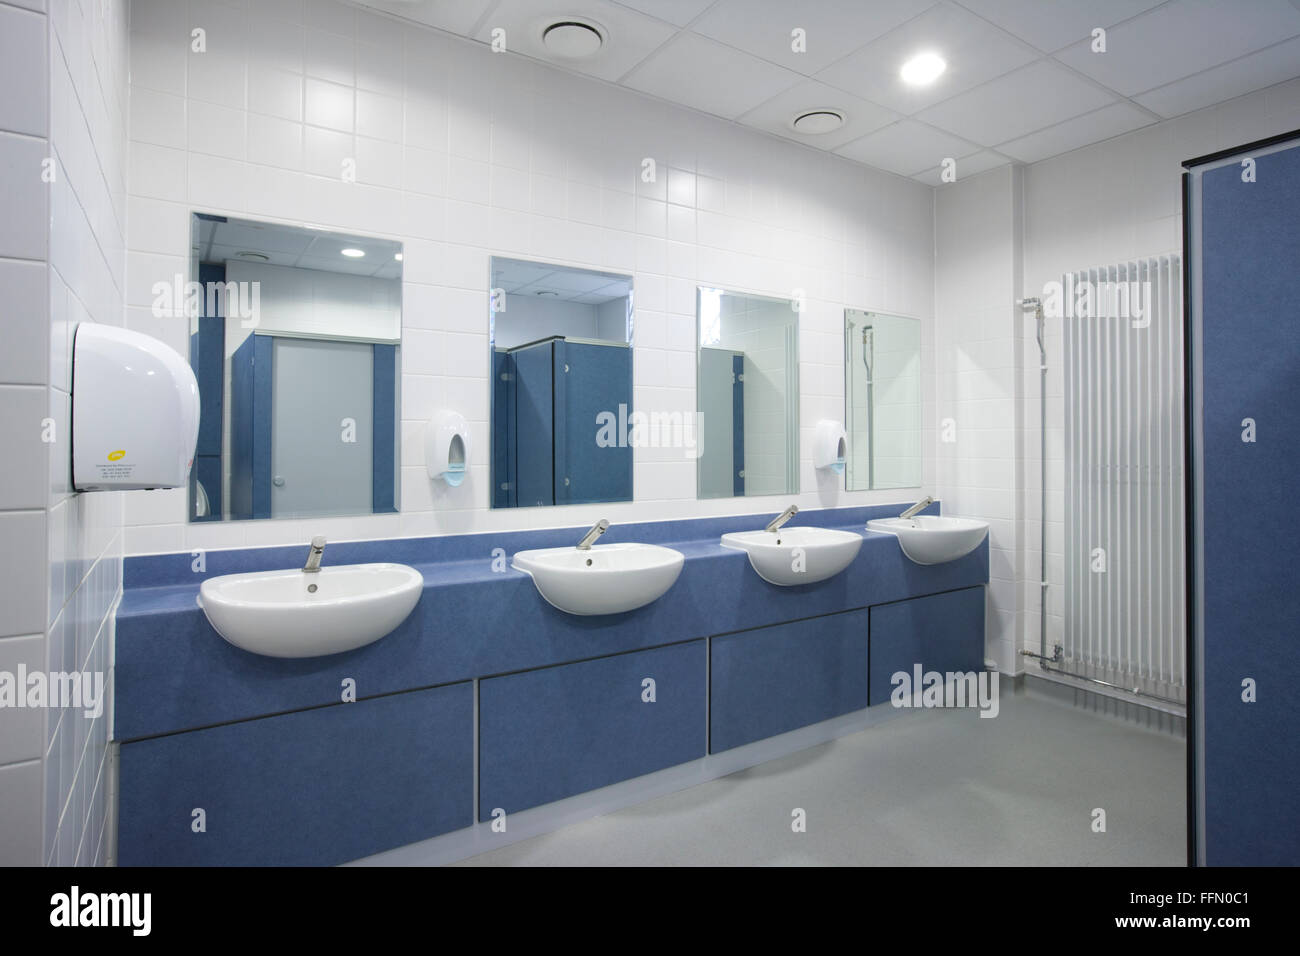 Modern office toilets and washroom stock photo royalty for Modern washroom